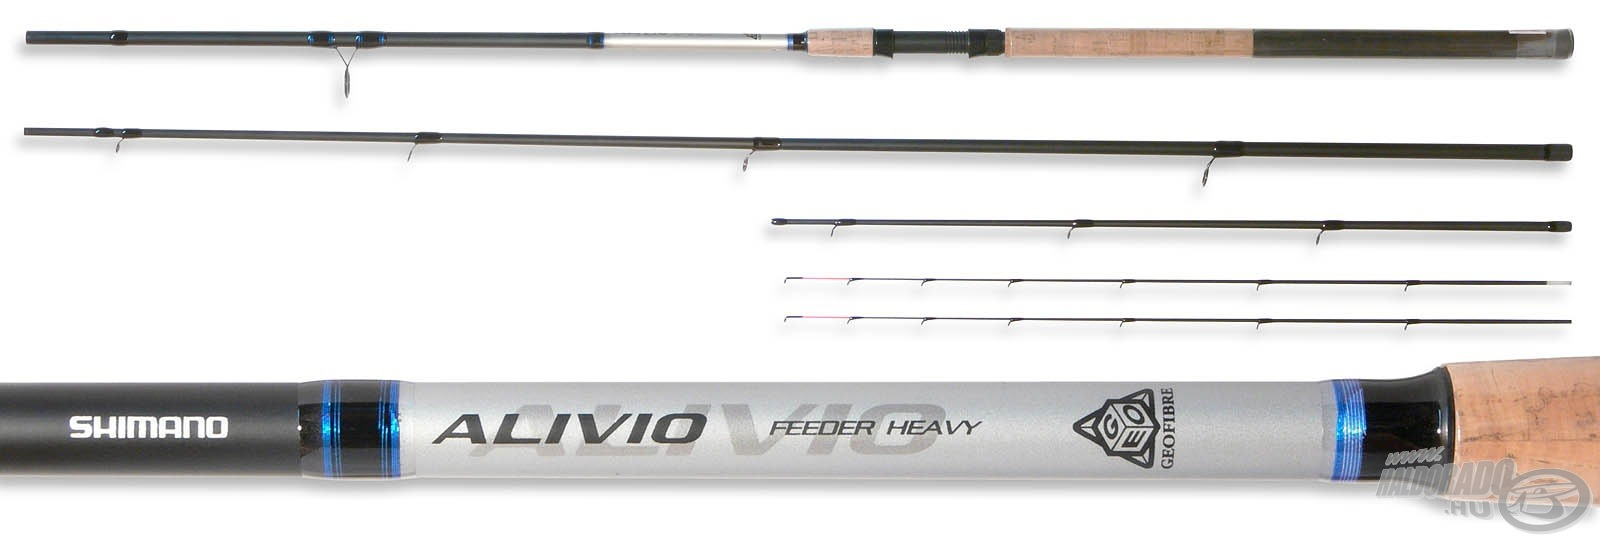 SHIMANO, Alivio, CX, 390, Heavy, feeder, 24990, helyett, 16990Ft